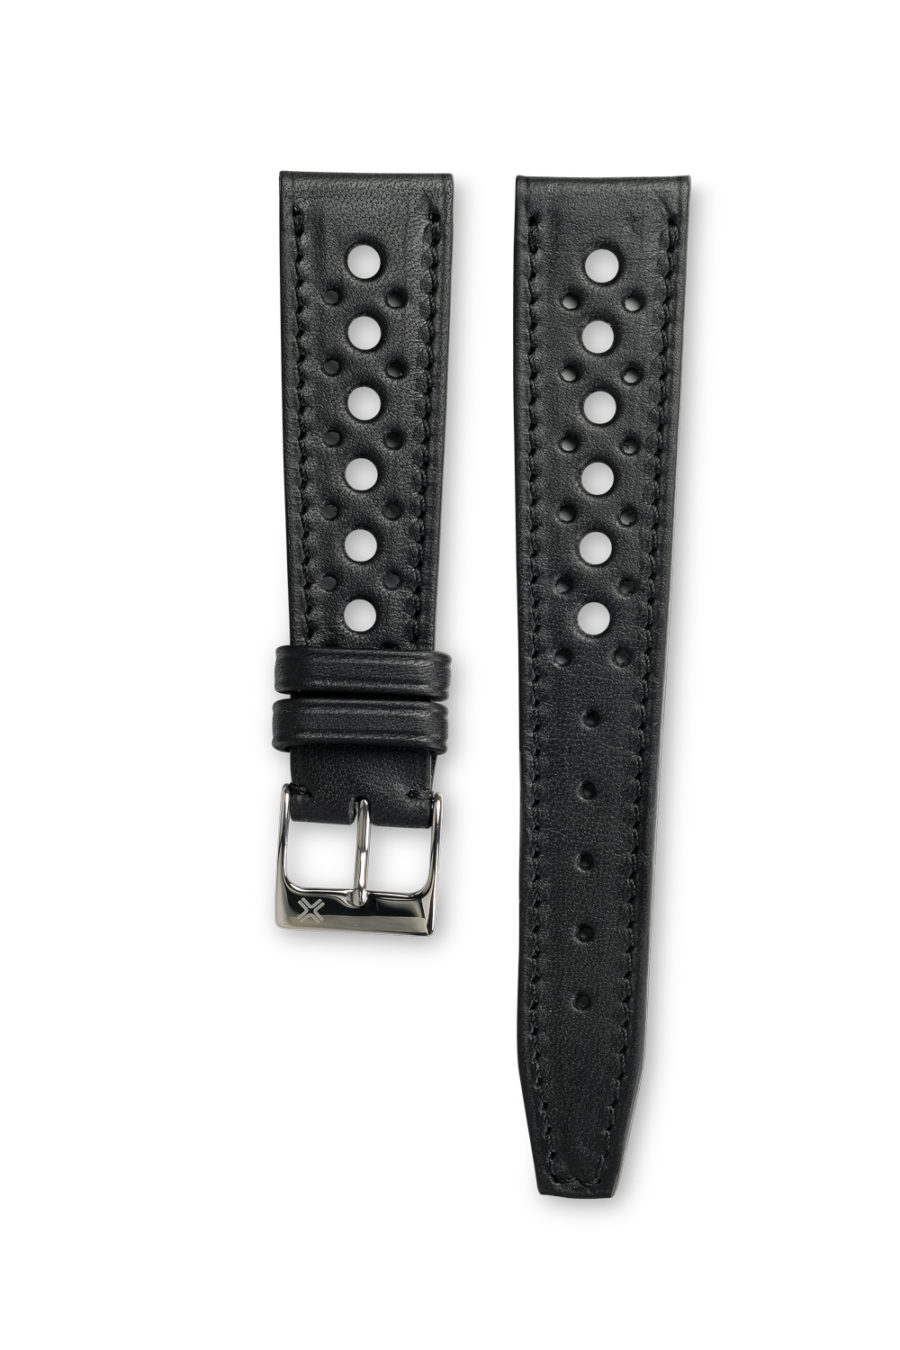 Smooth Rally Barenia deep black leather watch strap - tone on tone stitching - LUGS brand